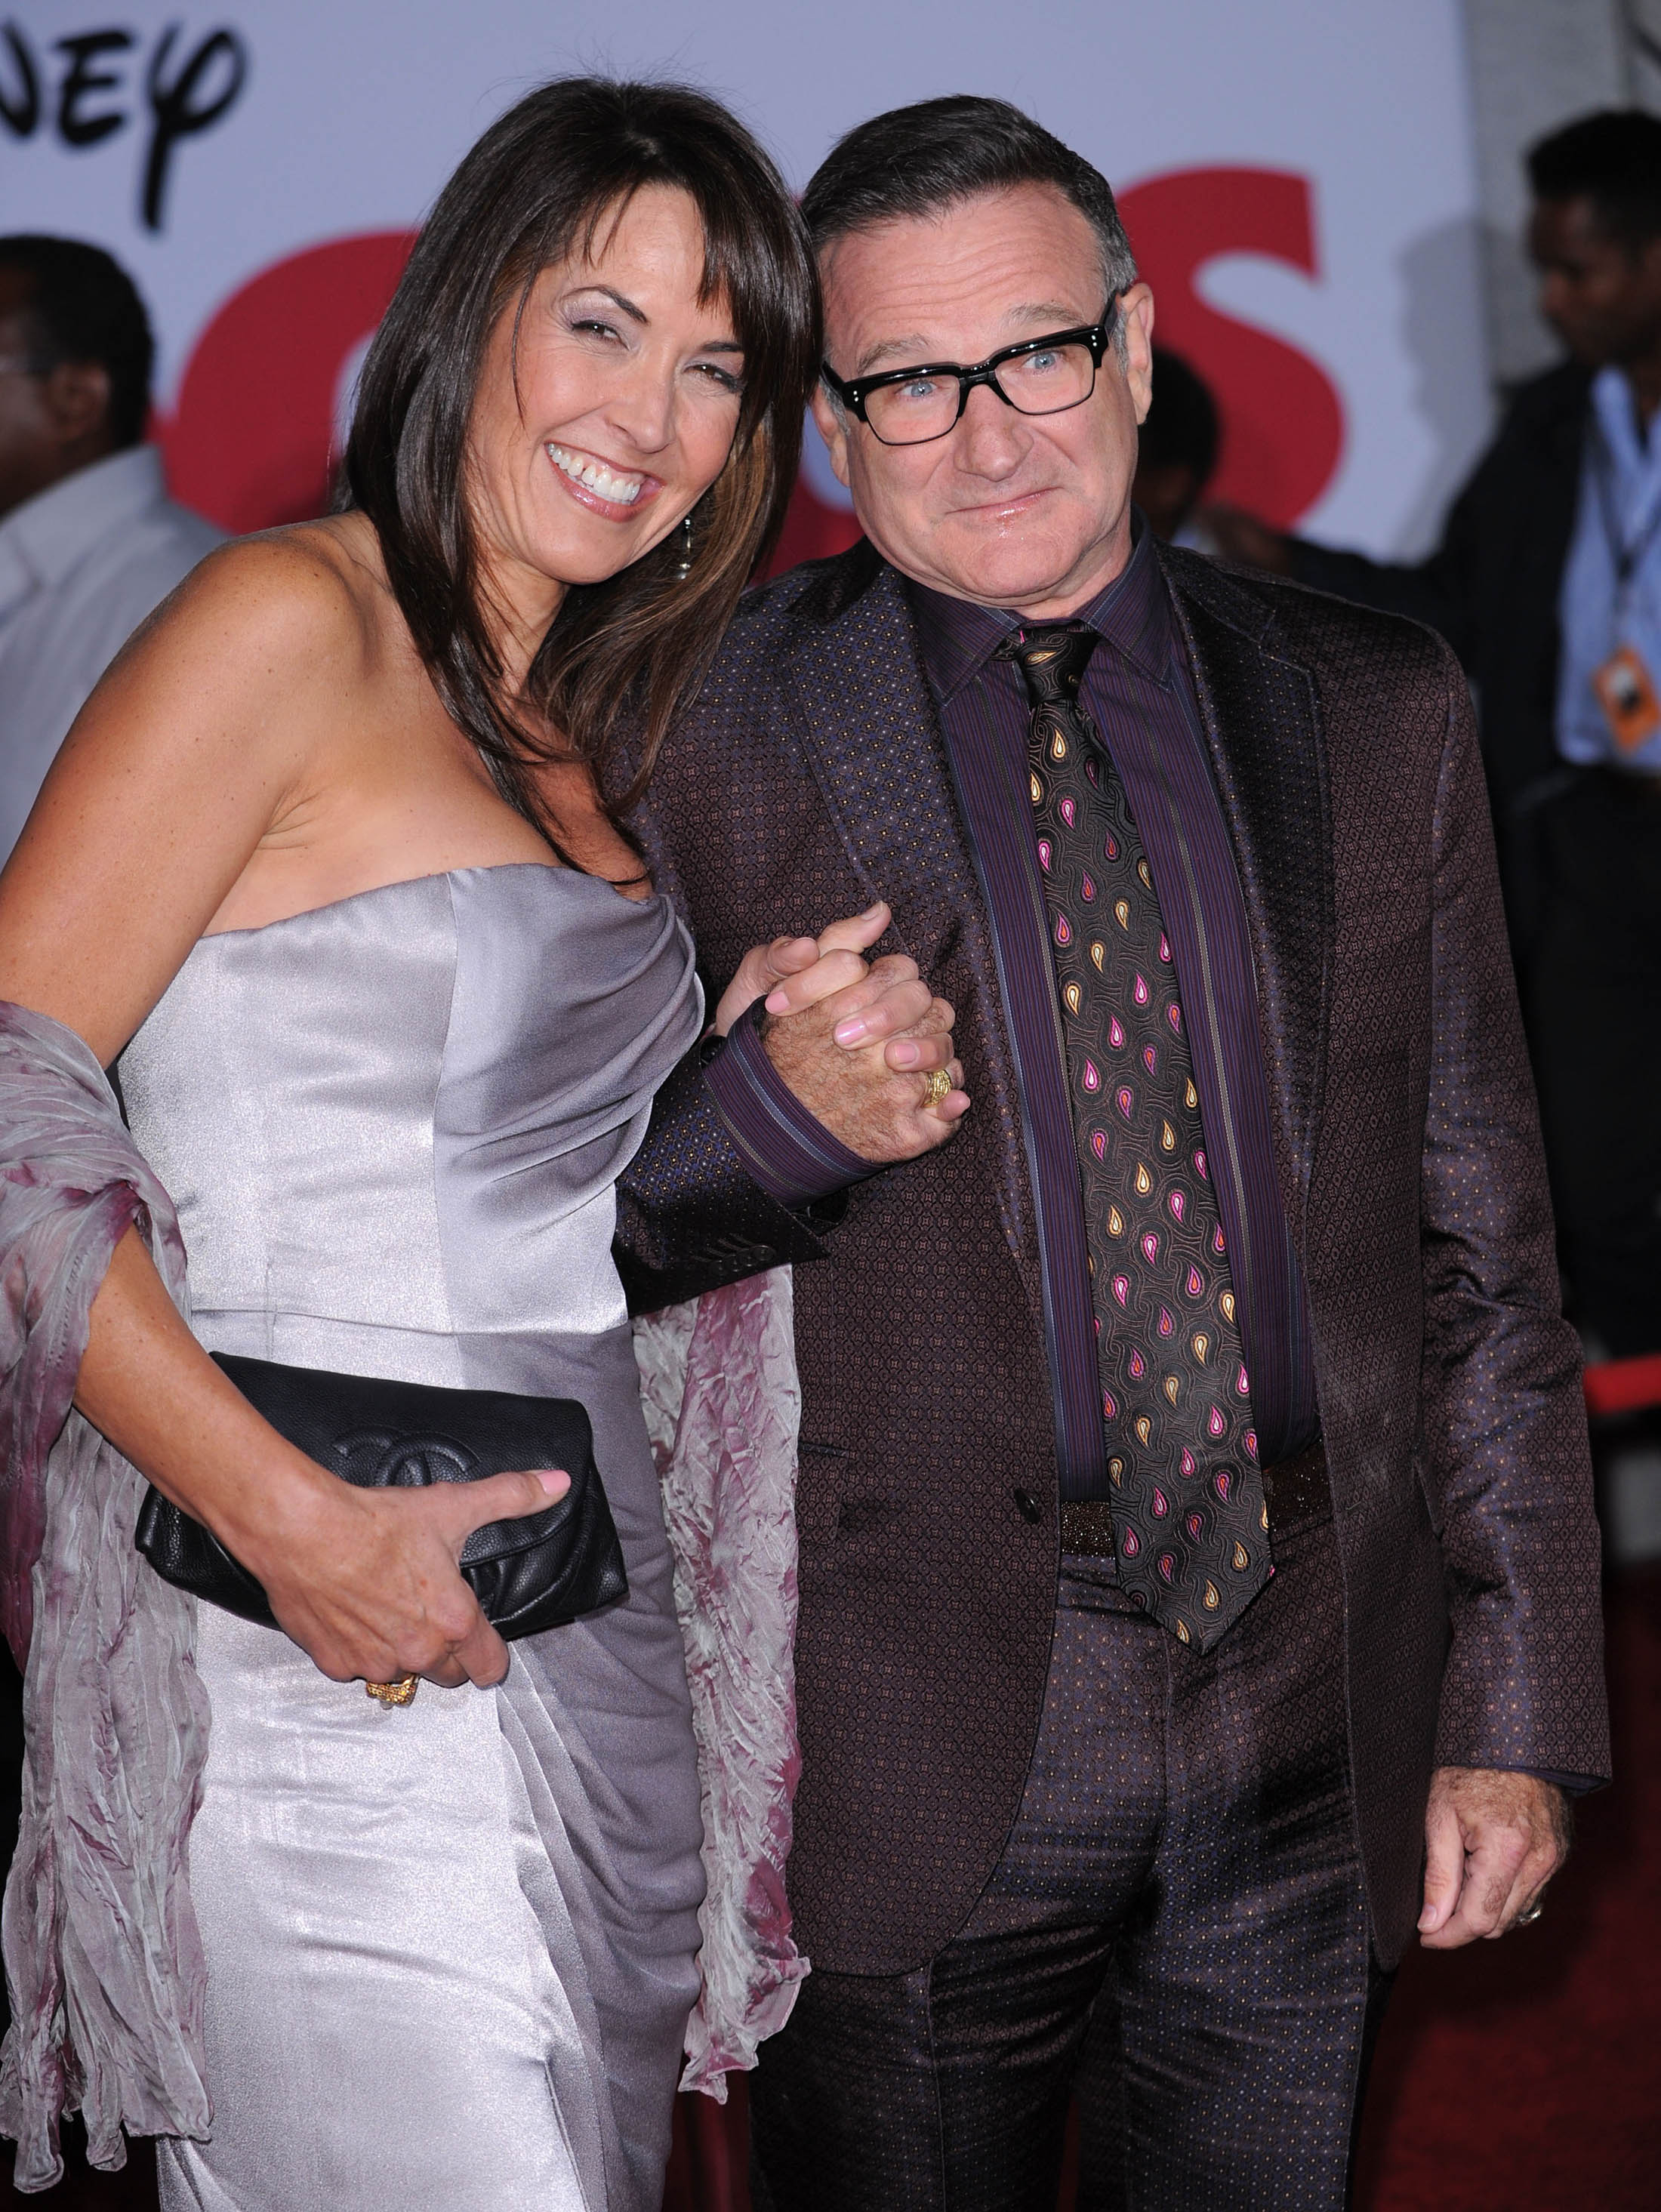 robin williams was losing his mind and was aware of it widow her essay is aimed at doctors so they can learn more about lbd through her intimate experience facing its effects it affects 1 5 million americans